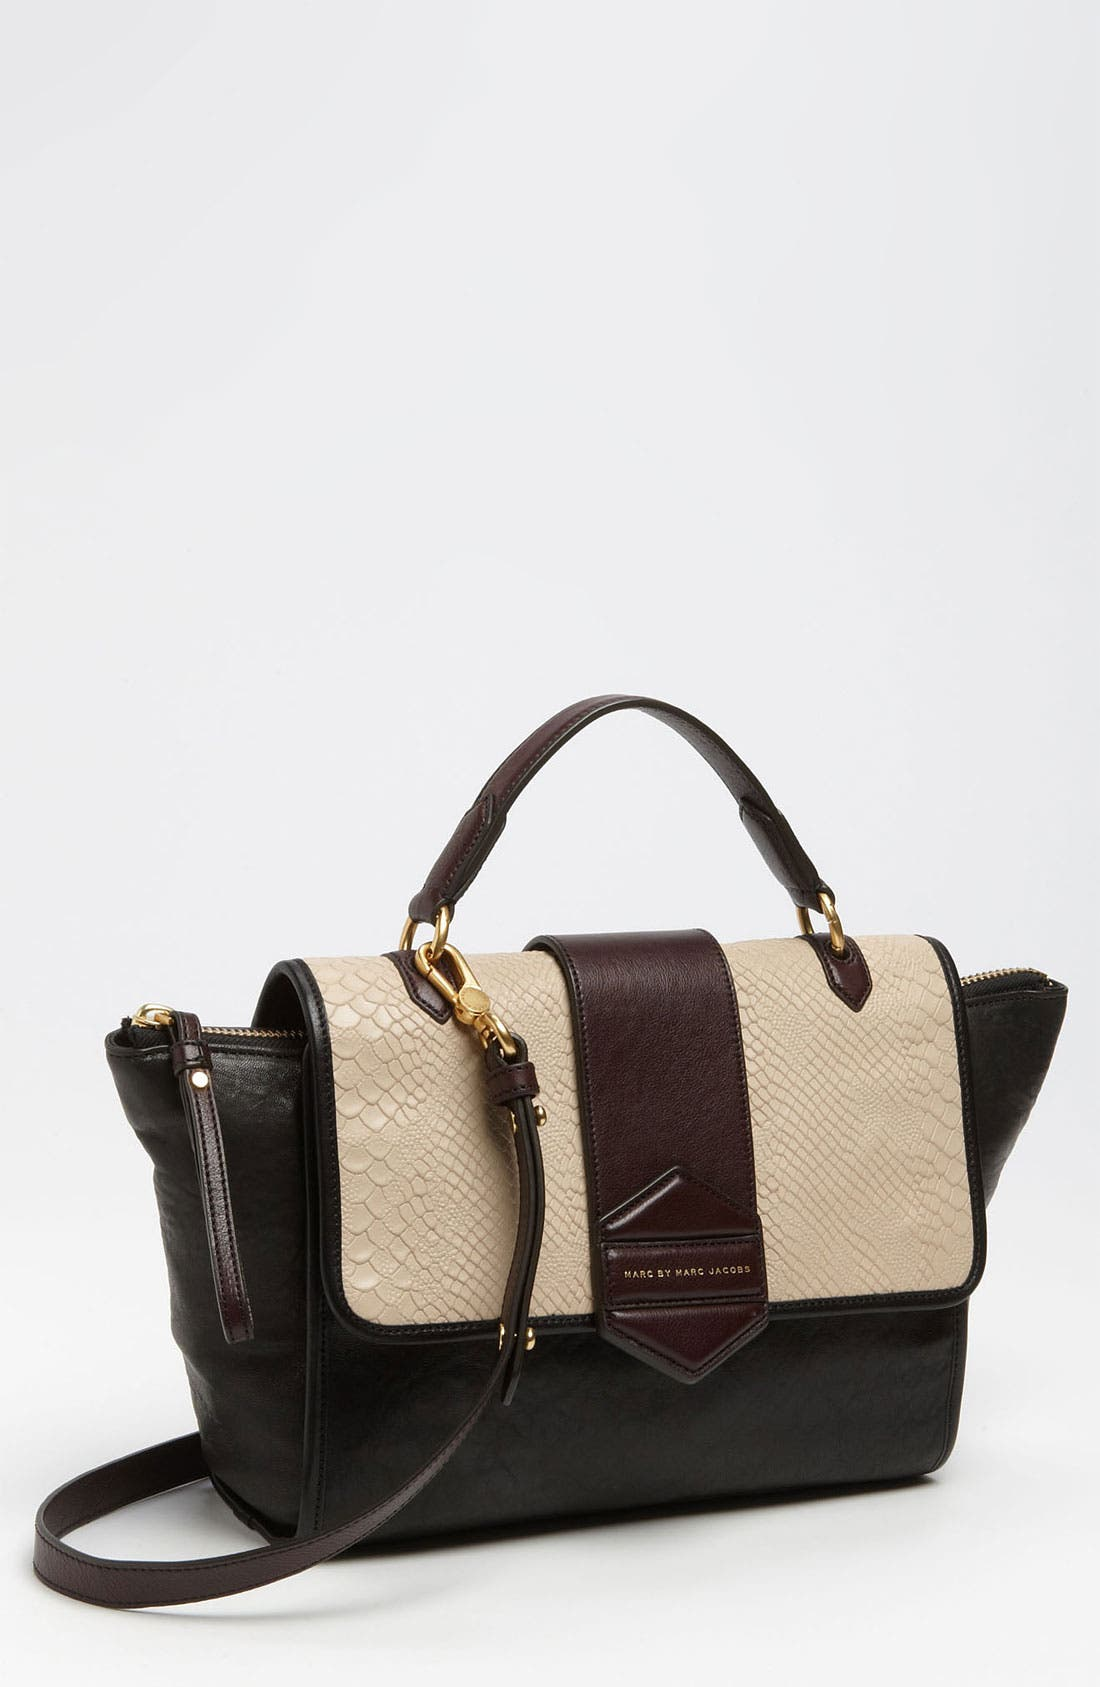 Alternate Image 1 Selected - MARC BY MARC JACOBS 'Flipping Out' Leather Satchel